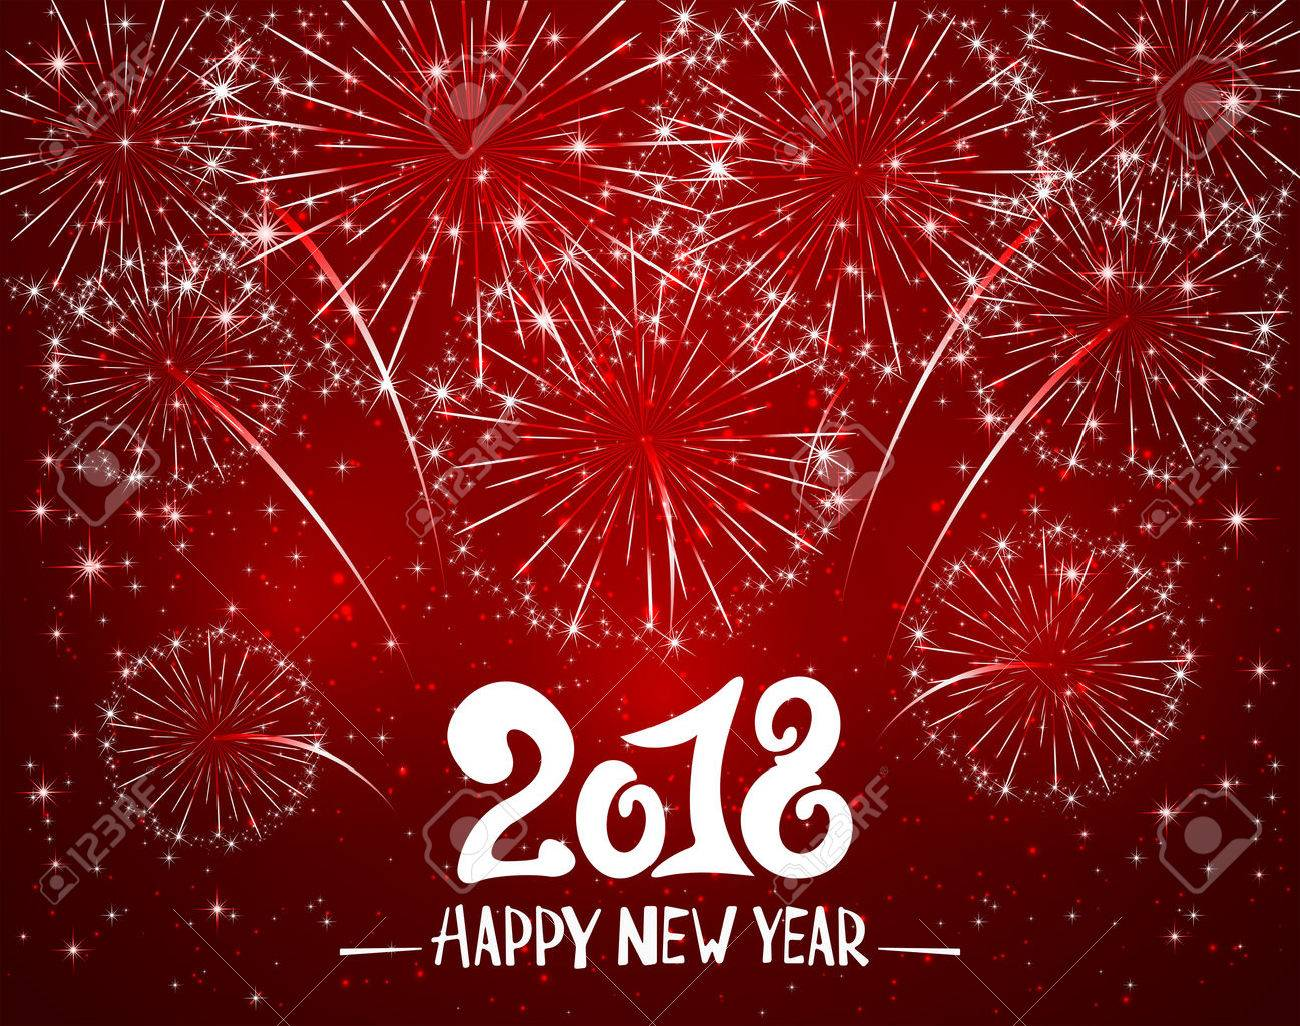 Lettering Happy New Year 2018 and sparkling fireworks on red shiny background, holiday greeting, illustration. - 78354497